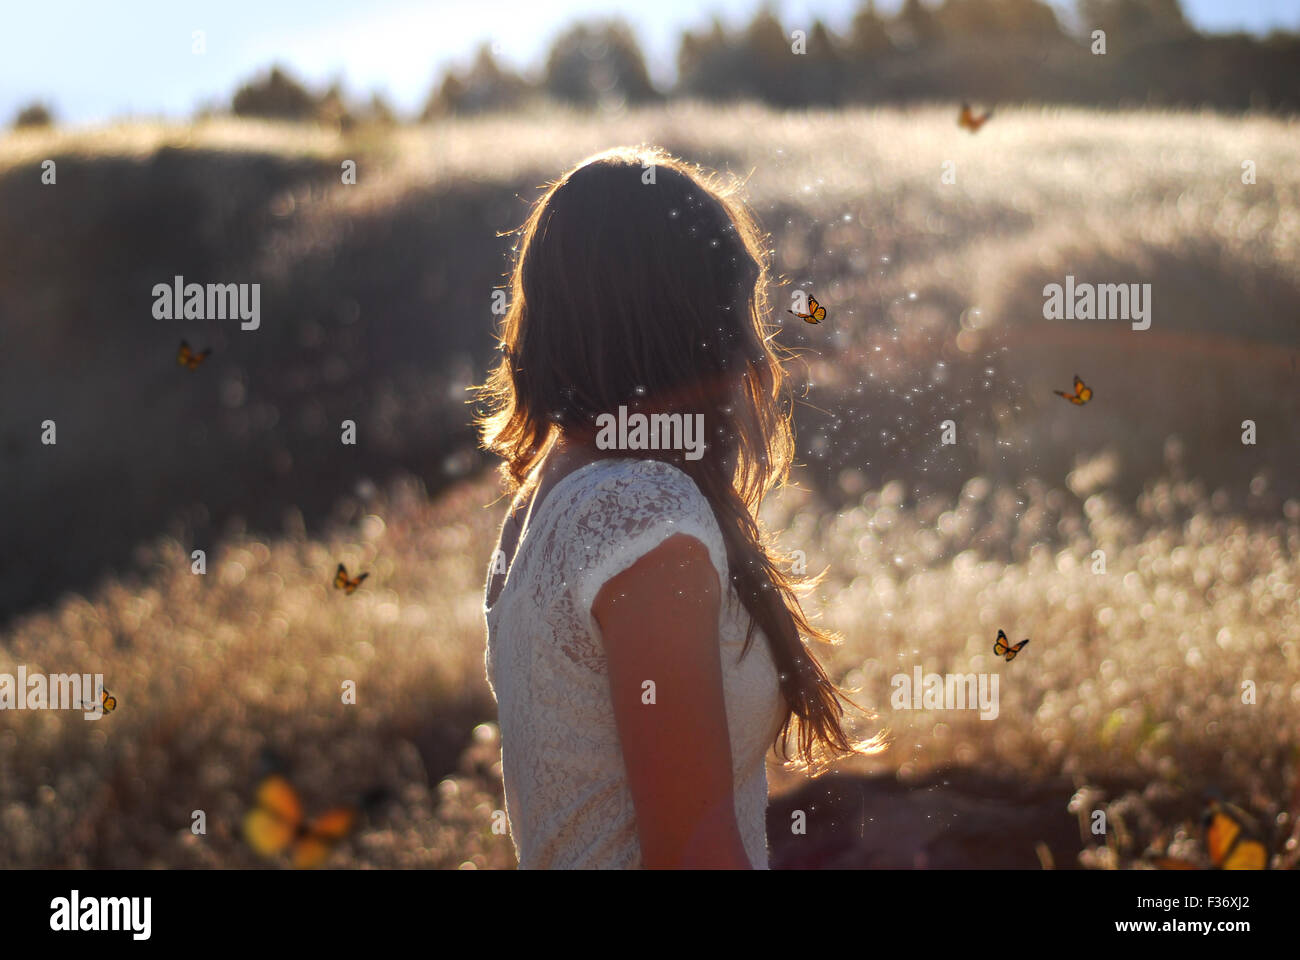 girl in the golden hour in white dress with butterflies flying around her - Stock Image